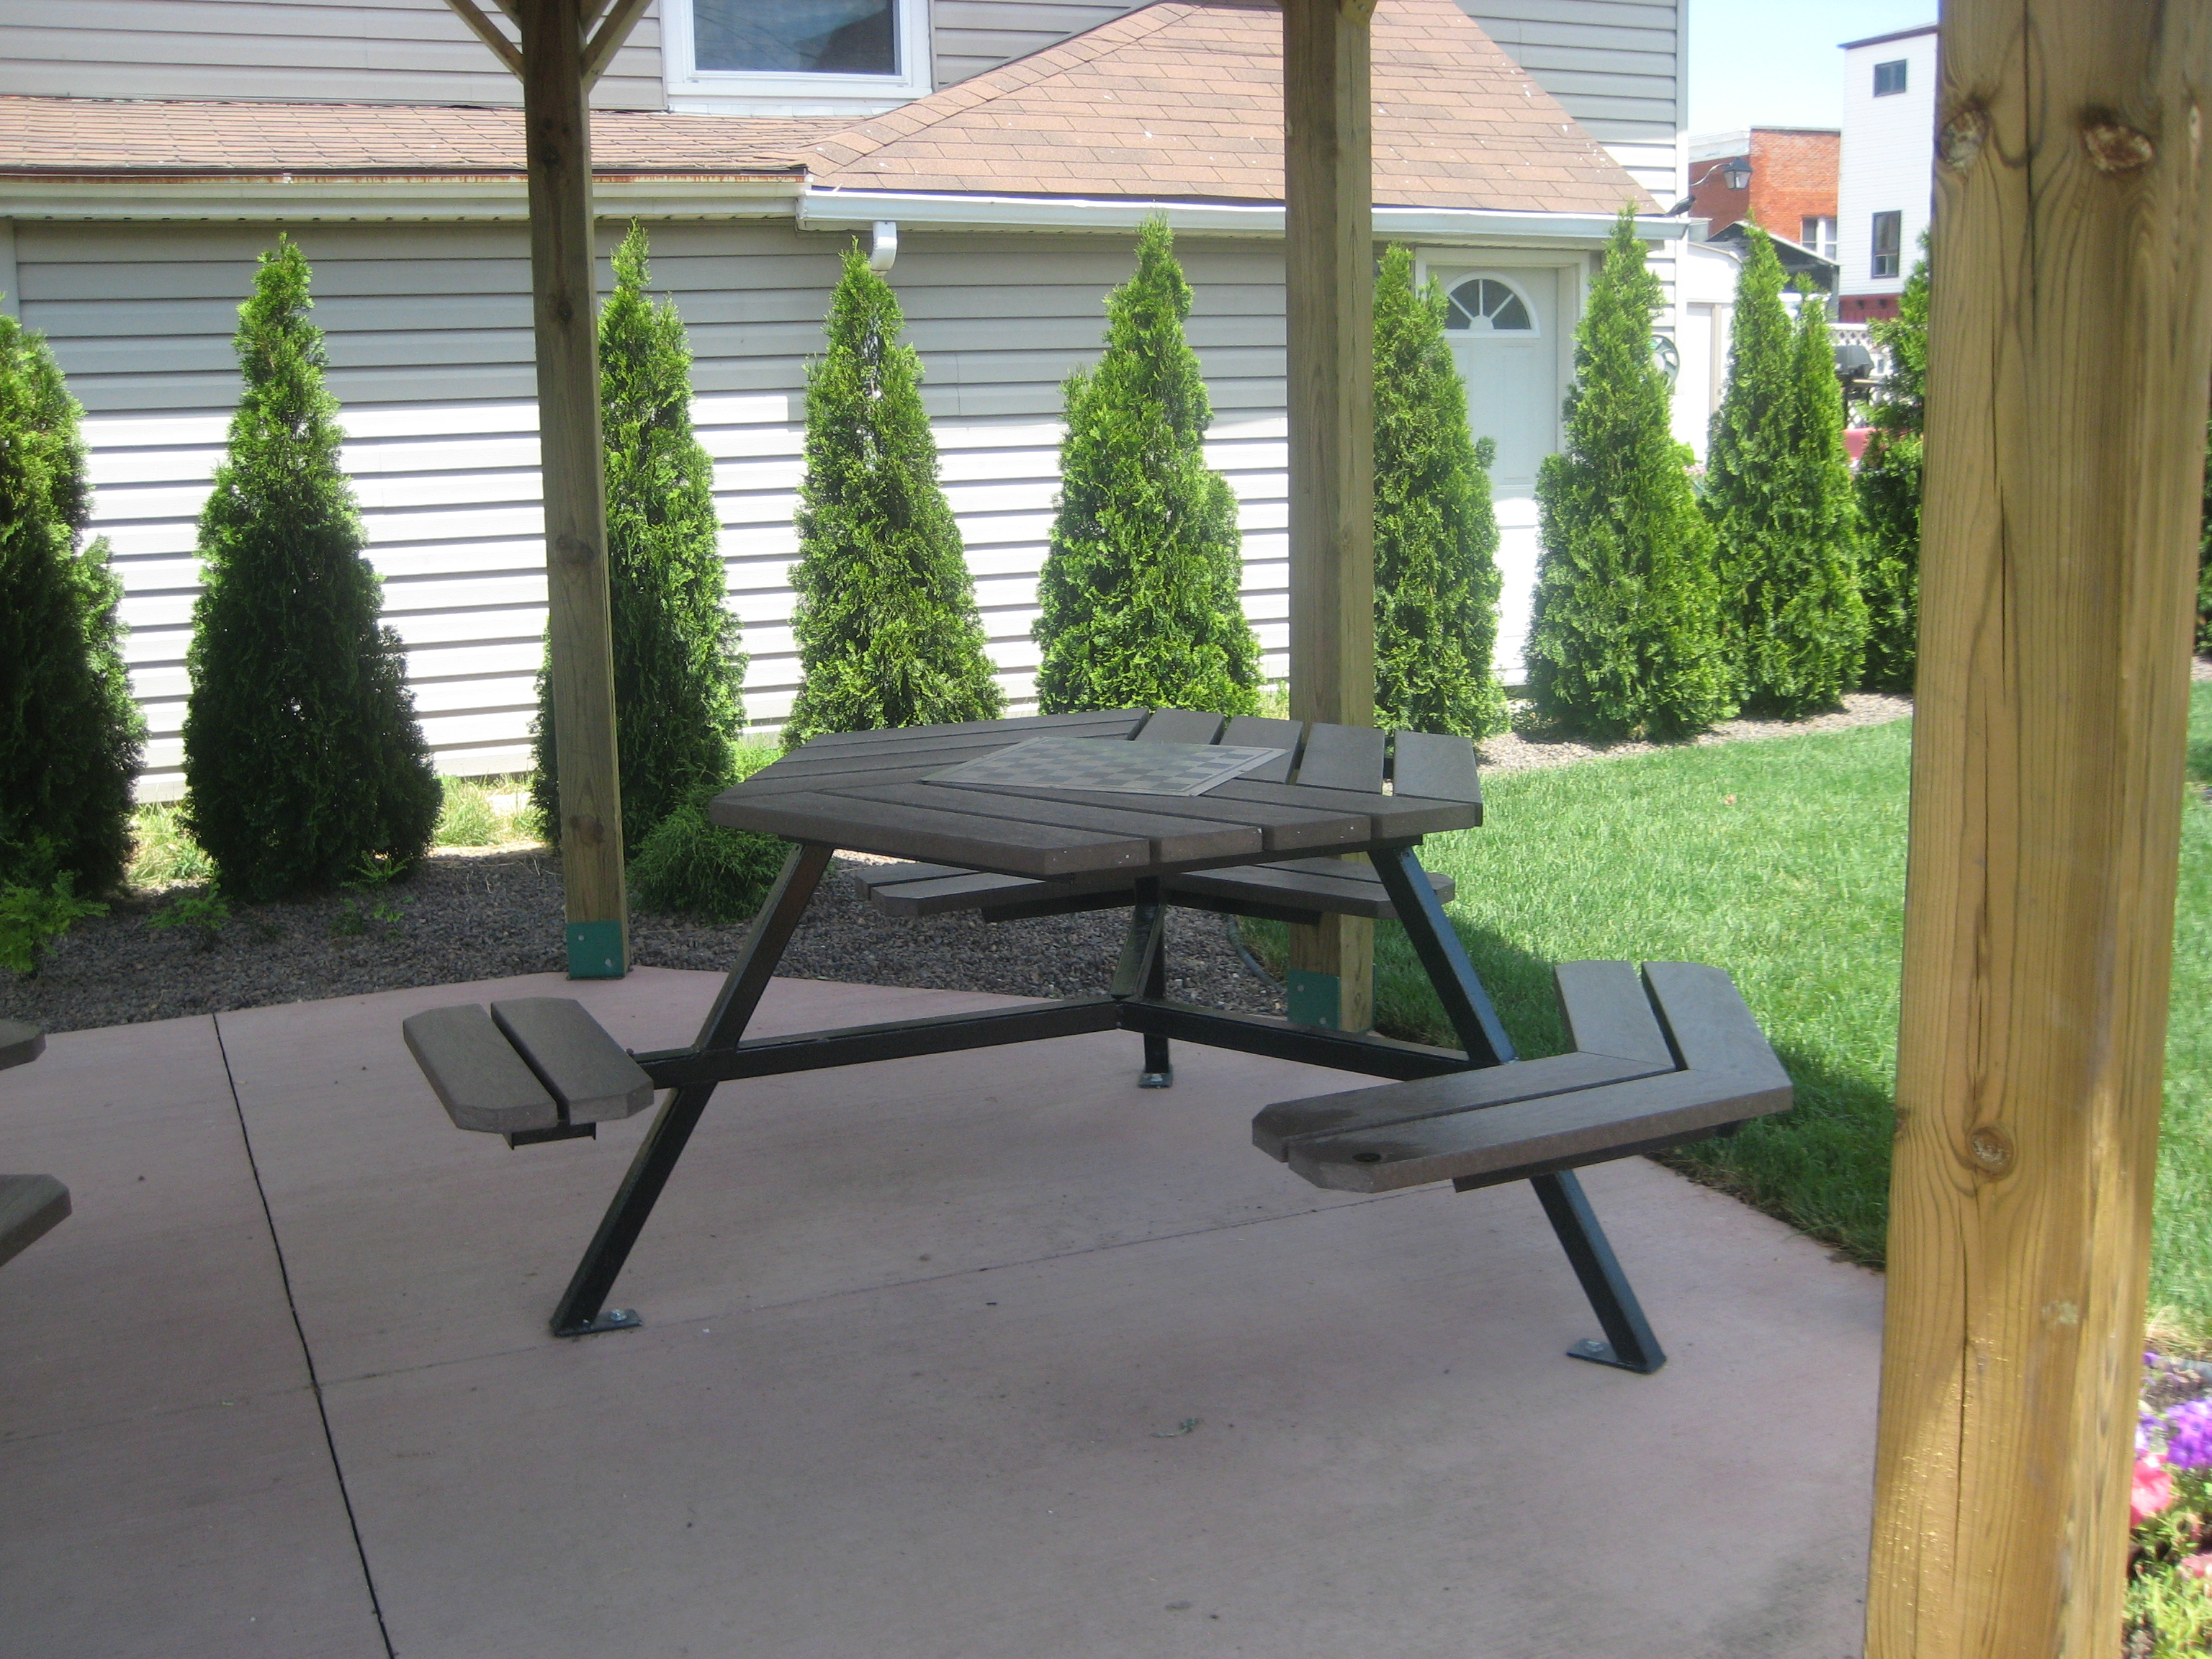 Few companies in Canada design outdoor spaces & benches for accessibility. OPC Ergo approves!